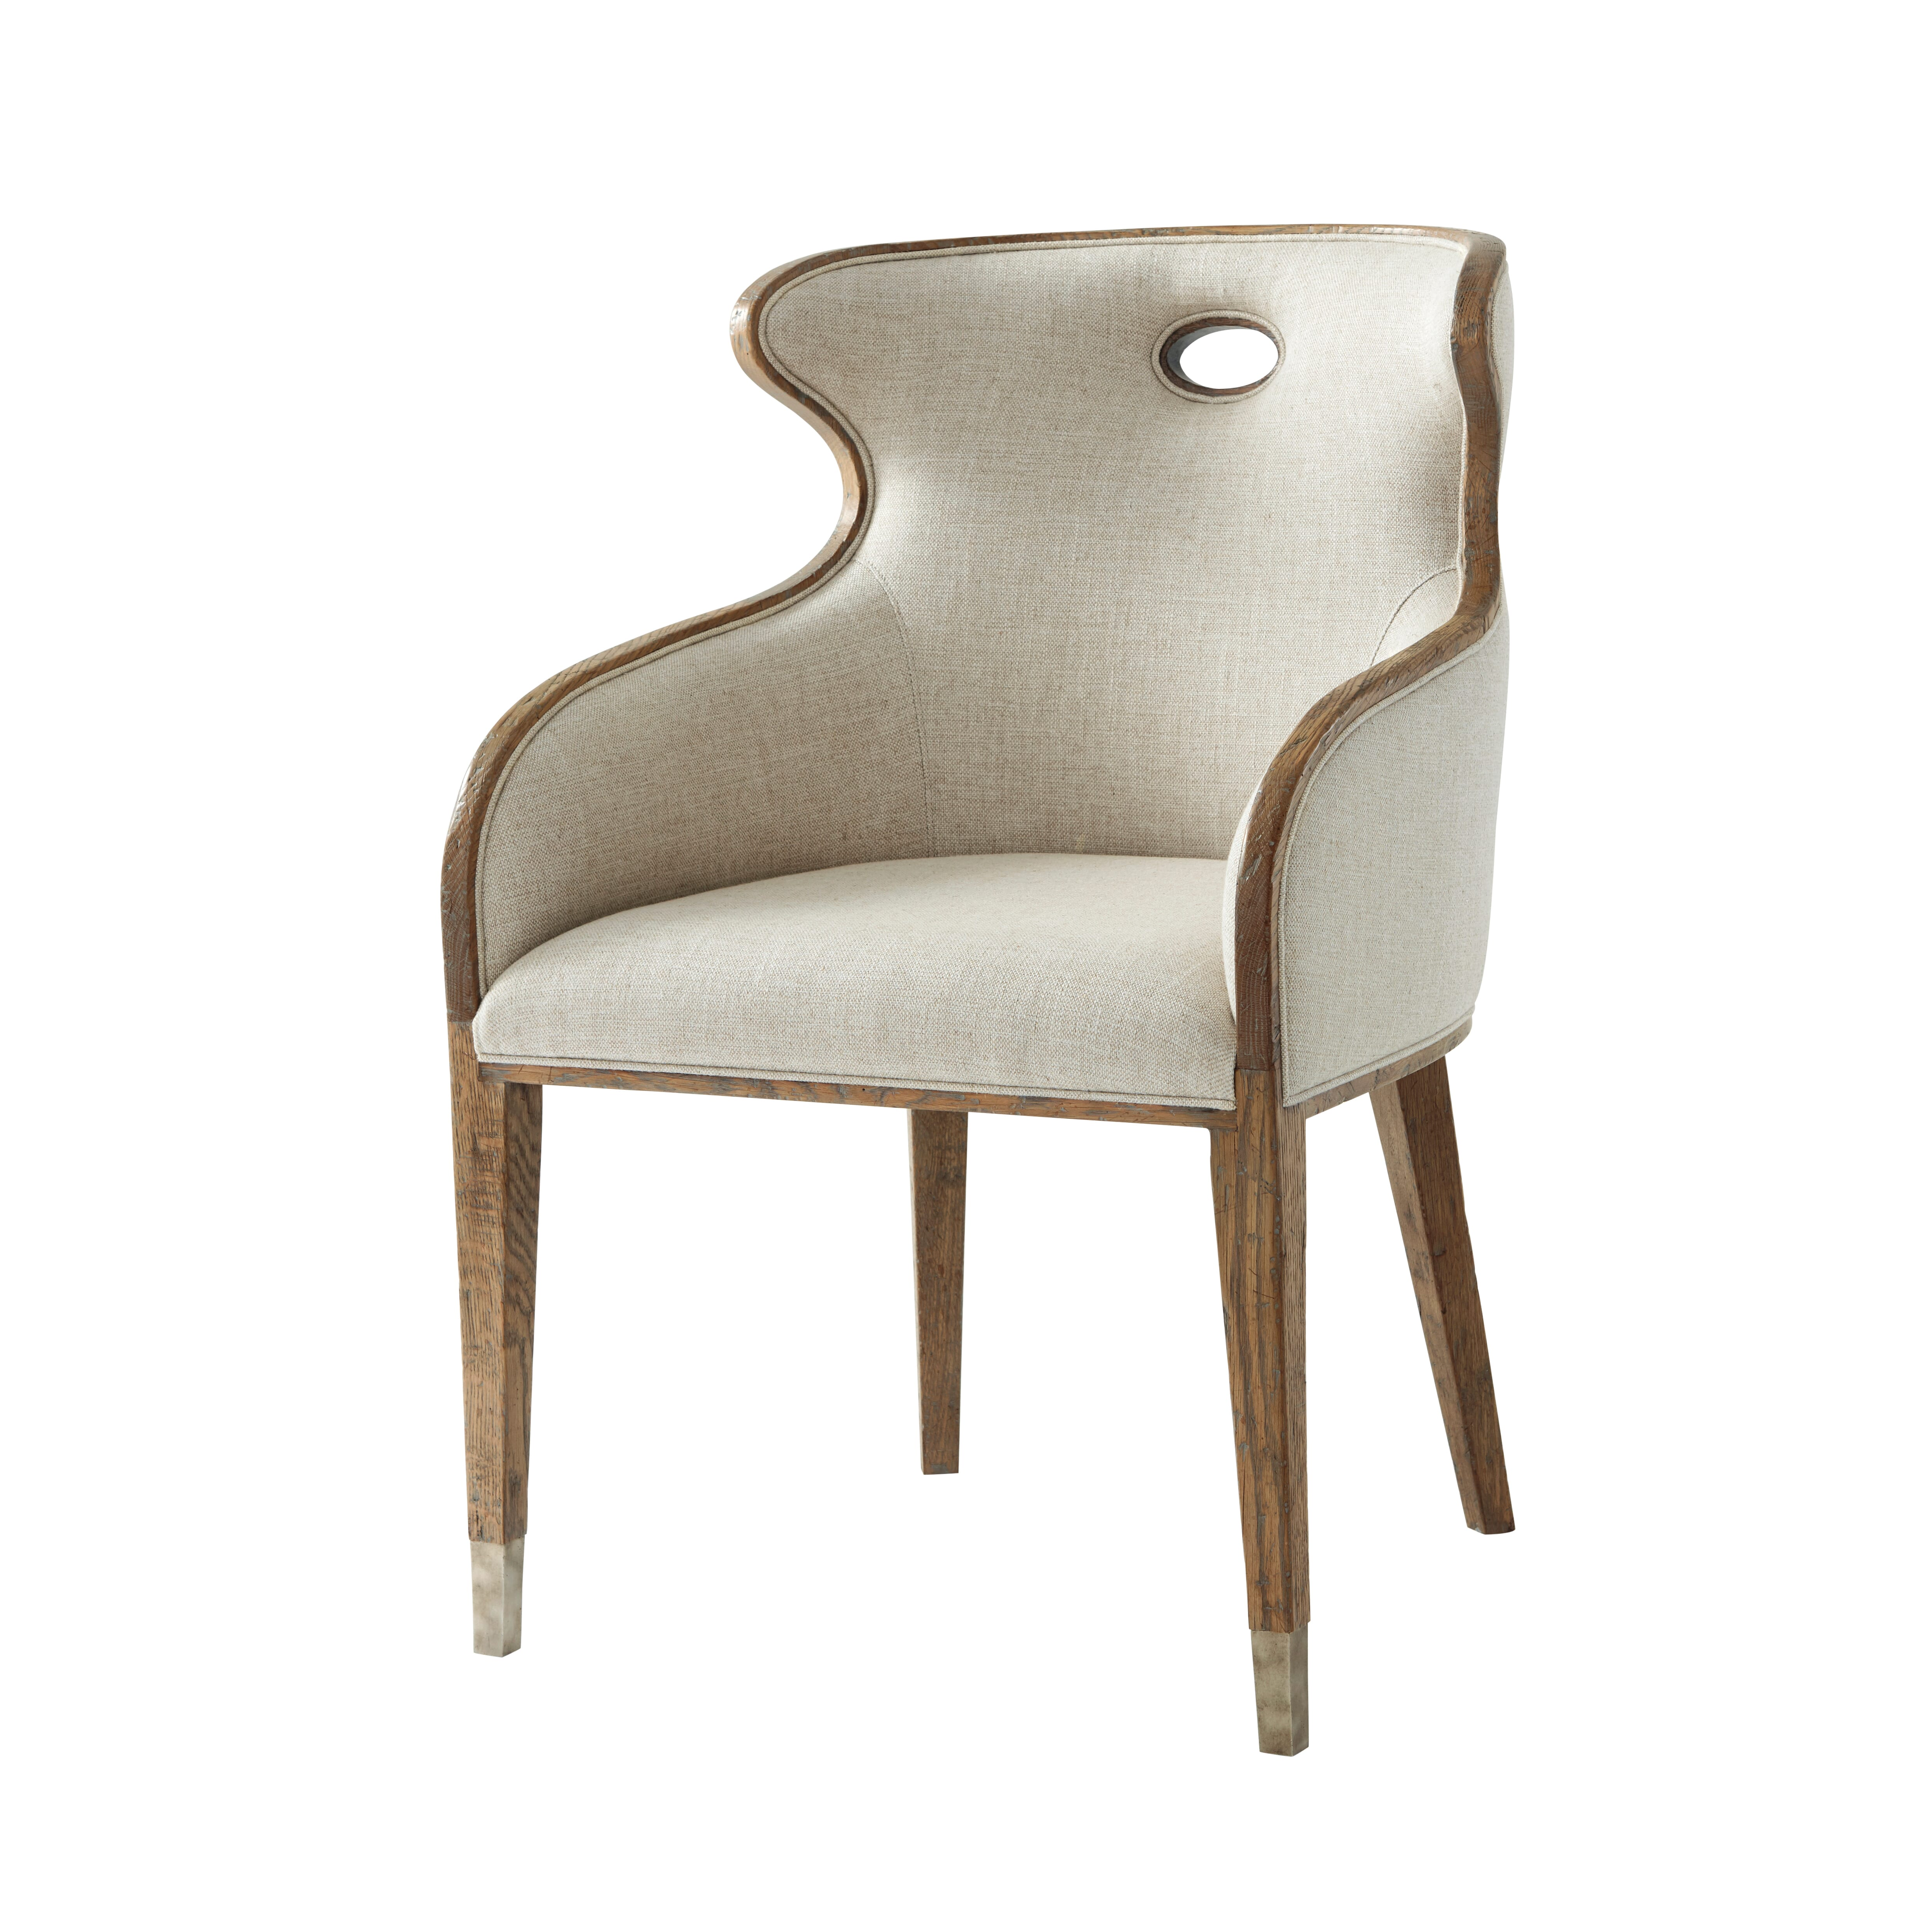 Scoop Back Upholstered Chair-$1,185.00